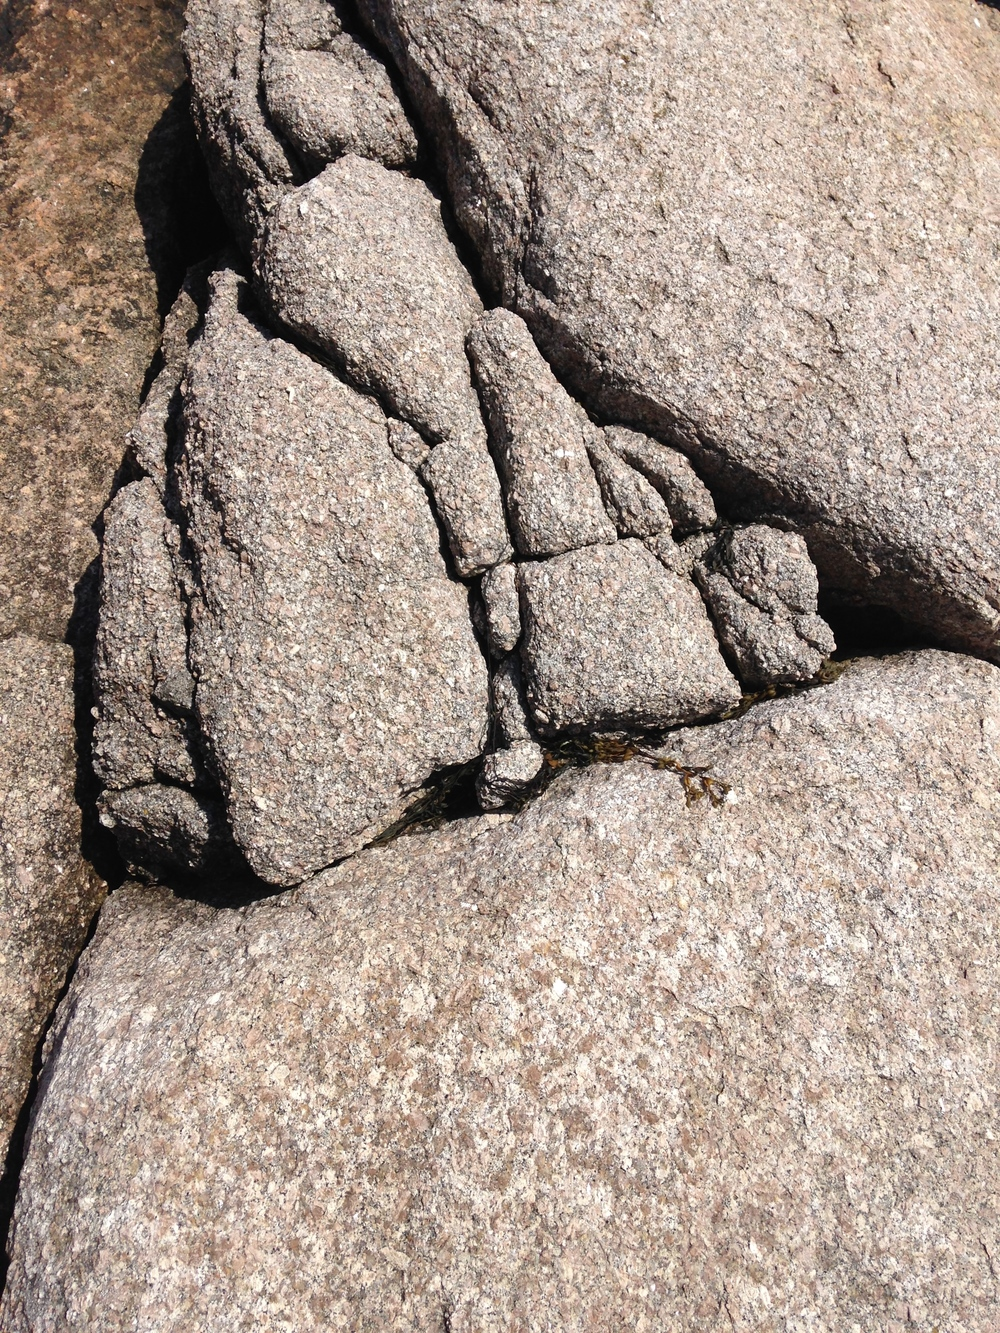 Rocks at Haystack